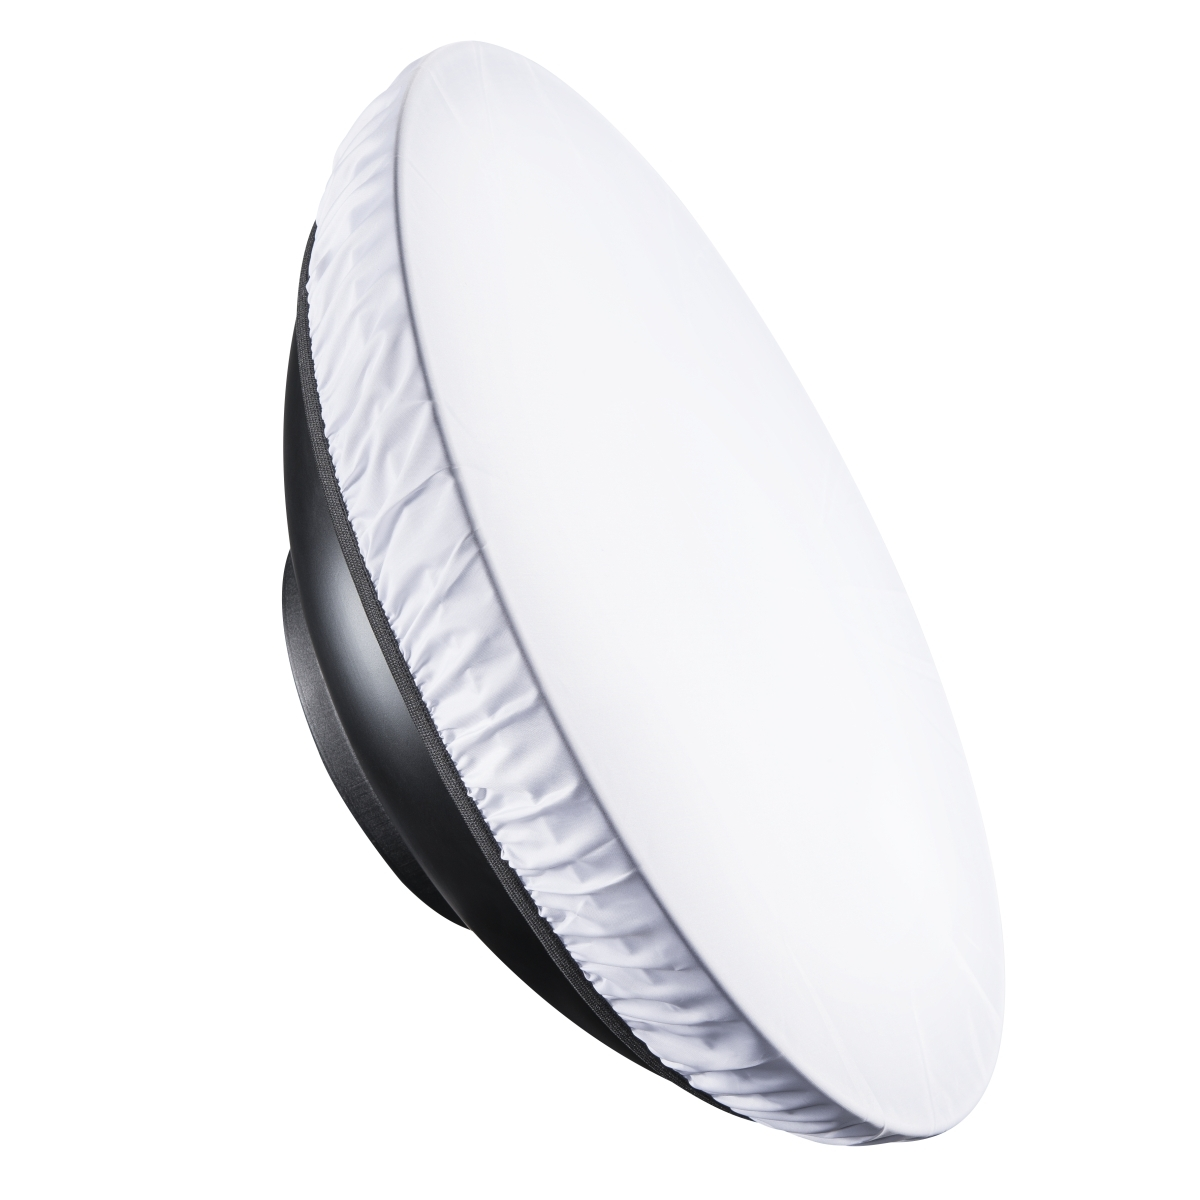 Walimex pro Diffuser for Beauty Dish, 70cm